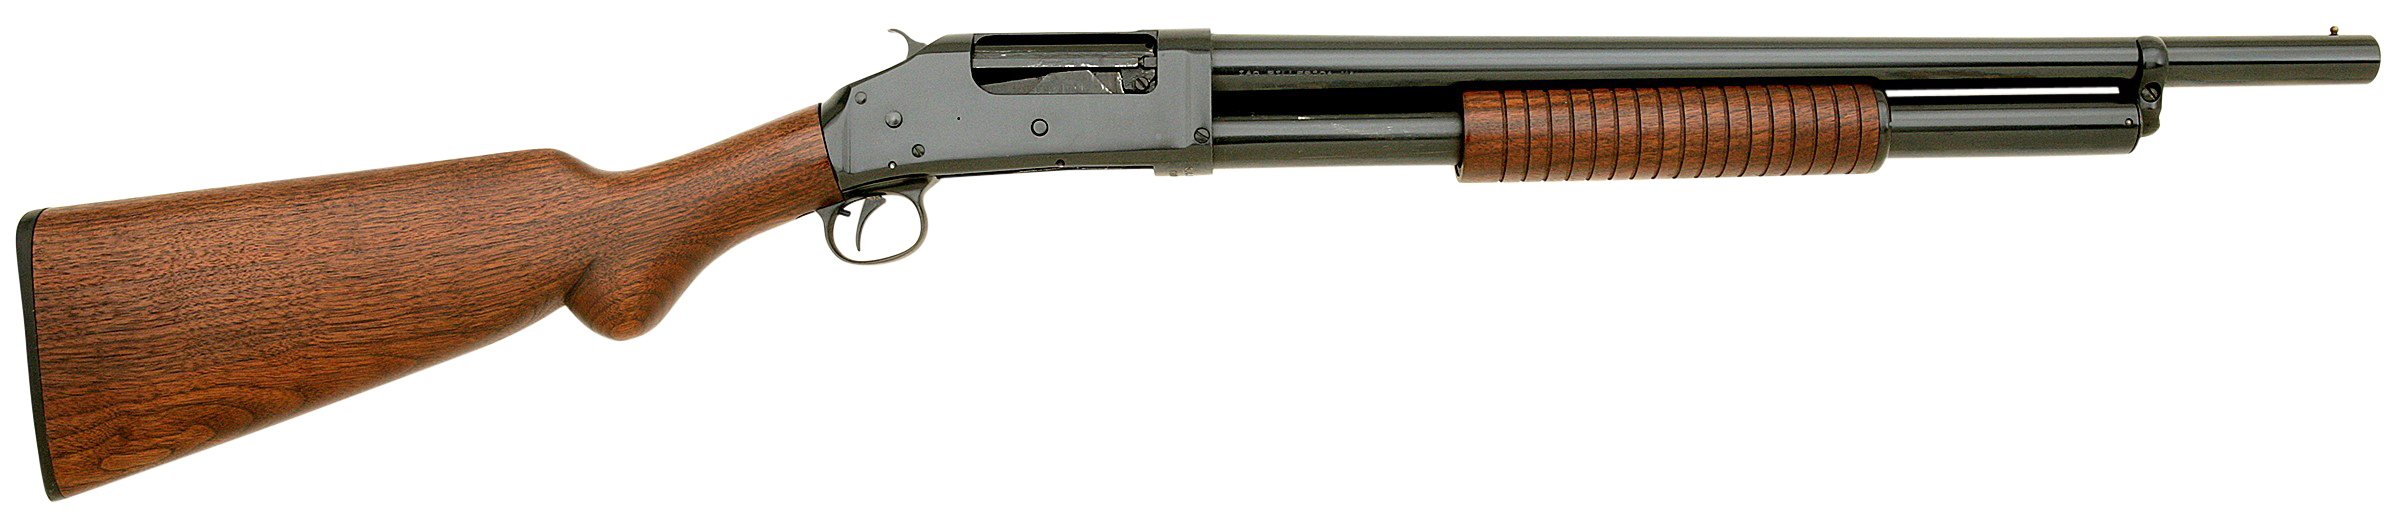 Interstate Arms 97 Pump 12ga 20